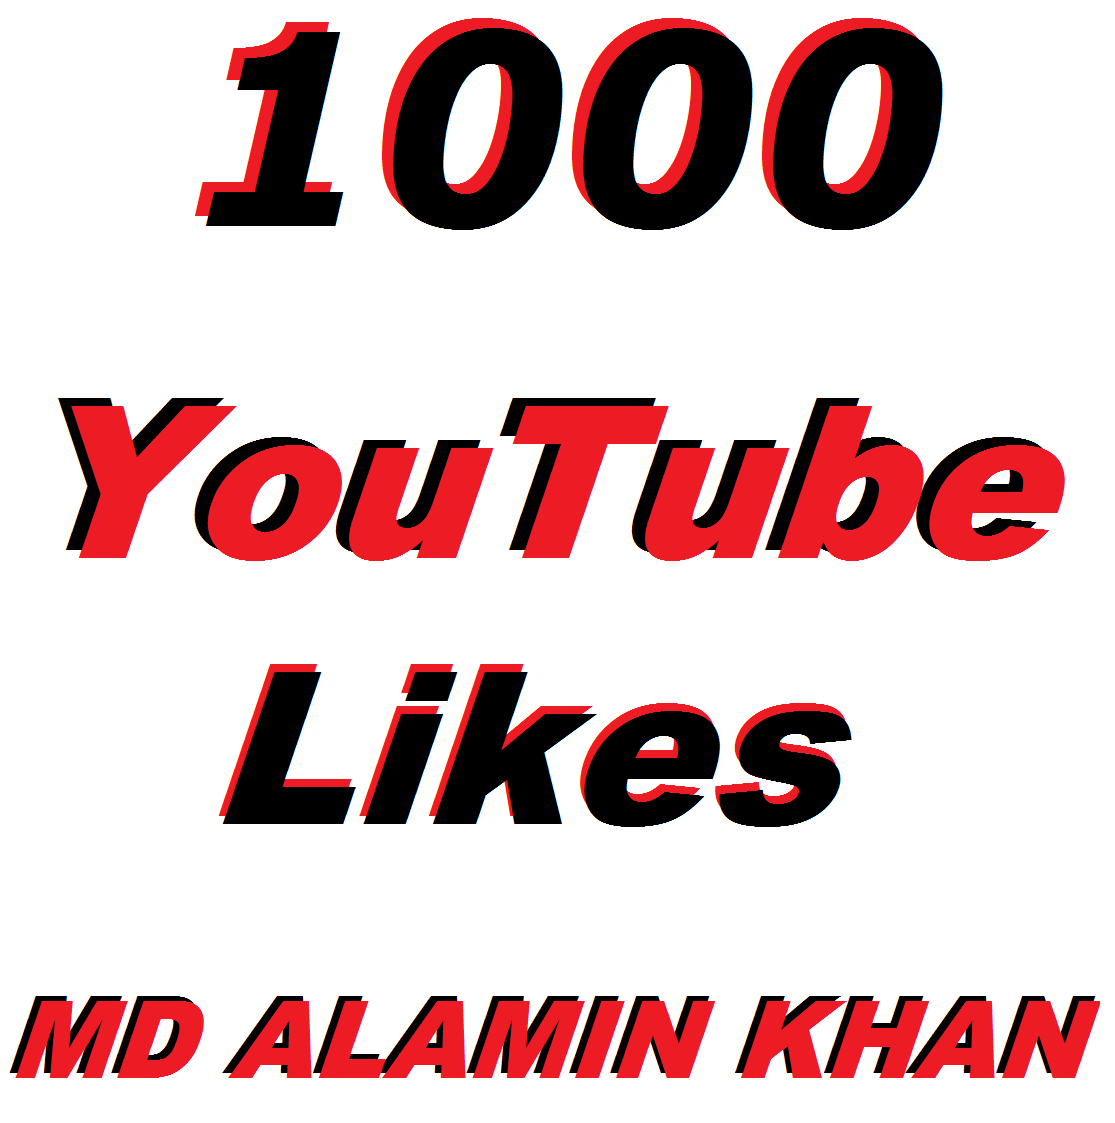 Get 1,000 Youtube Video Likes In 24/36 Hours